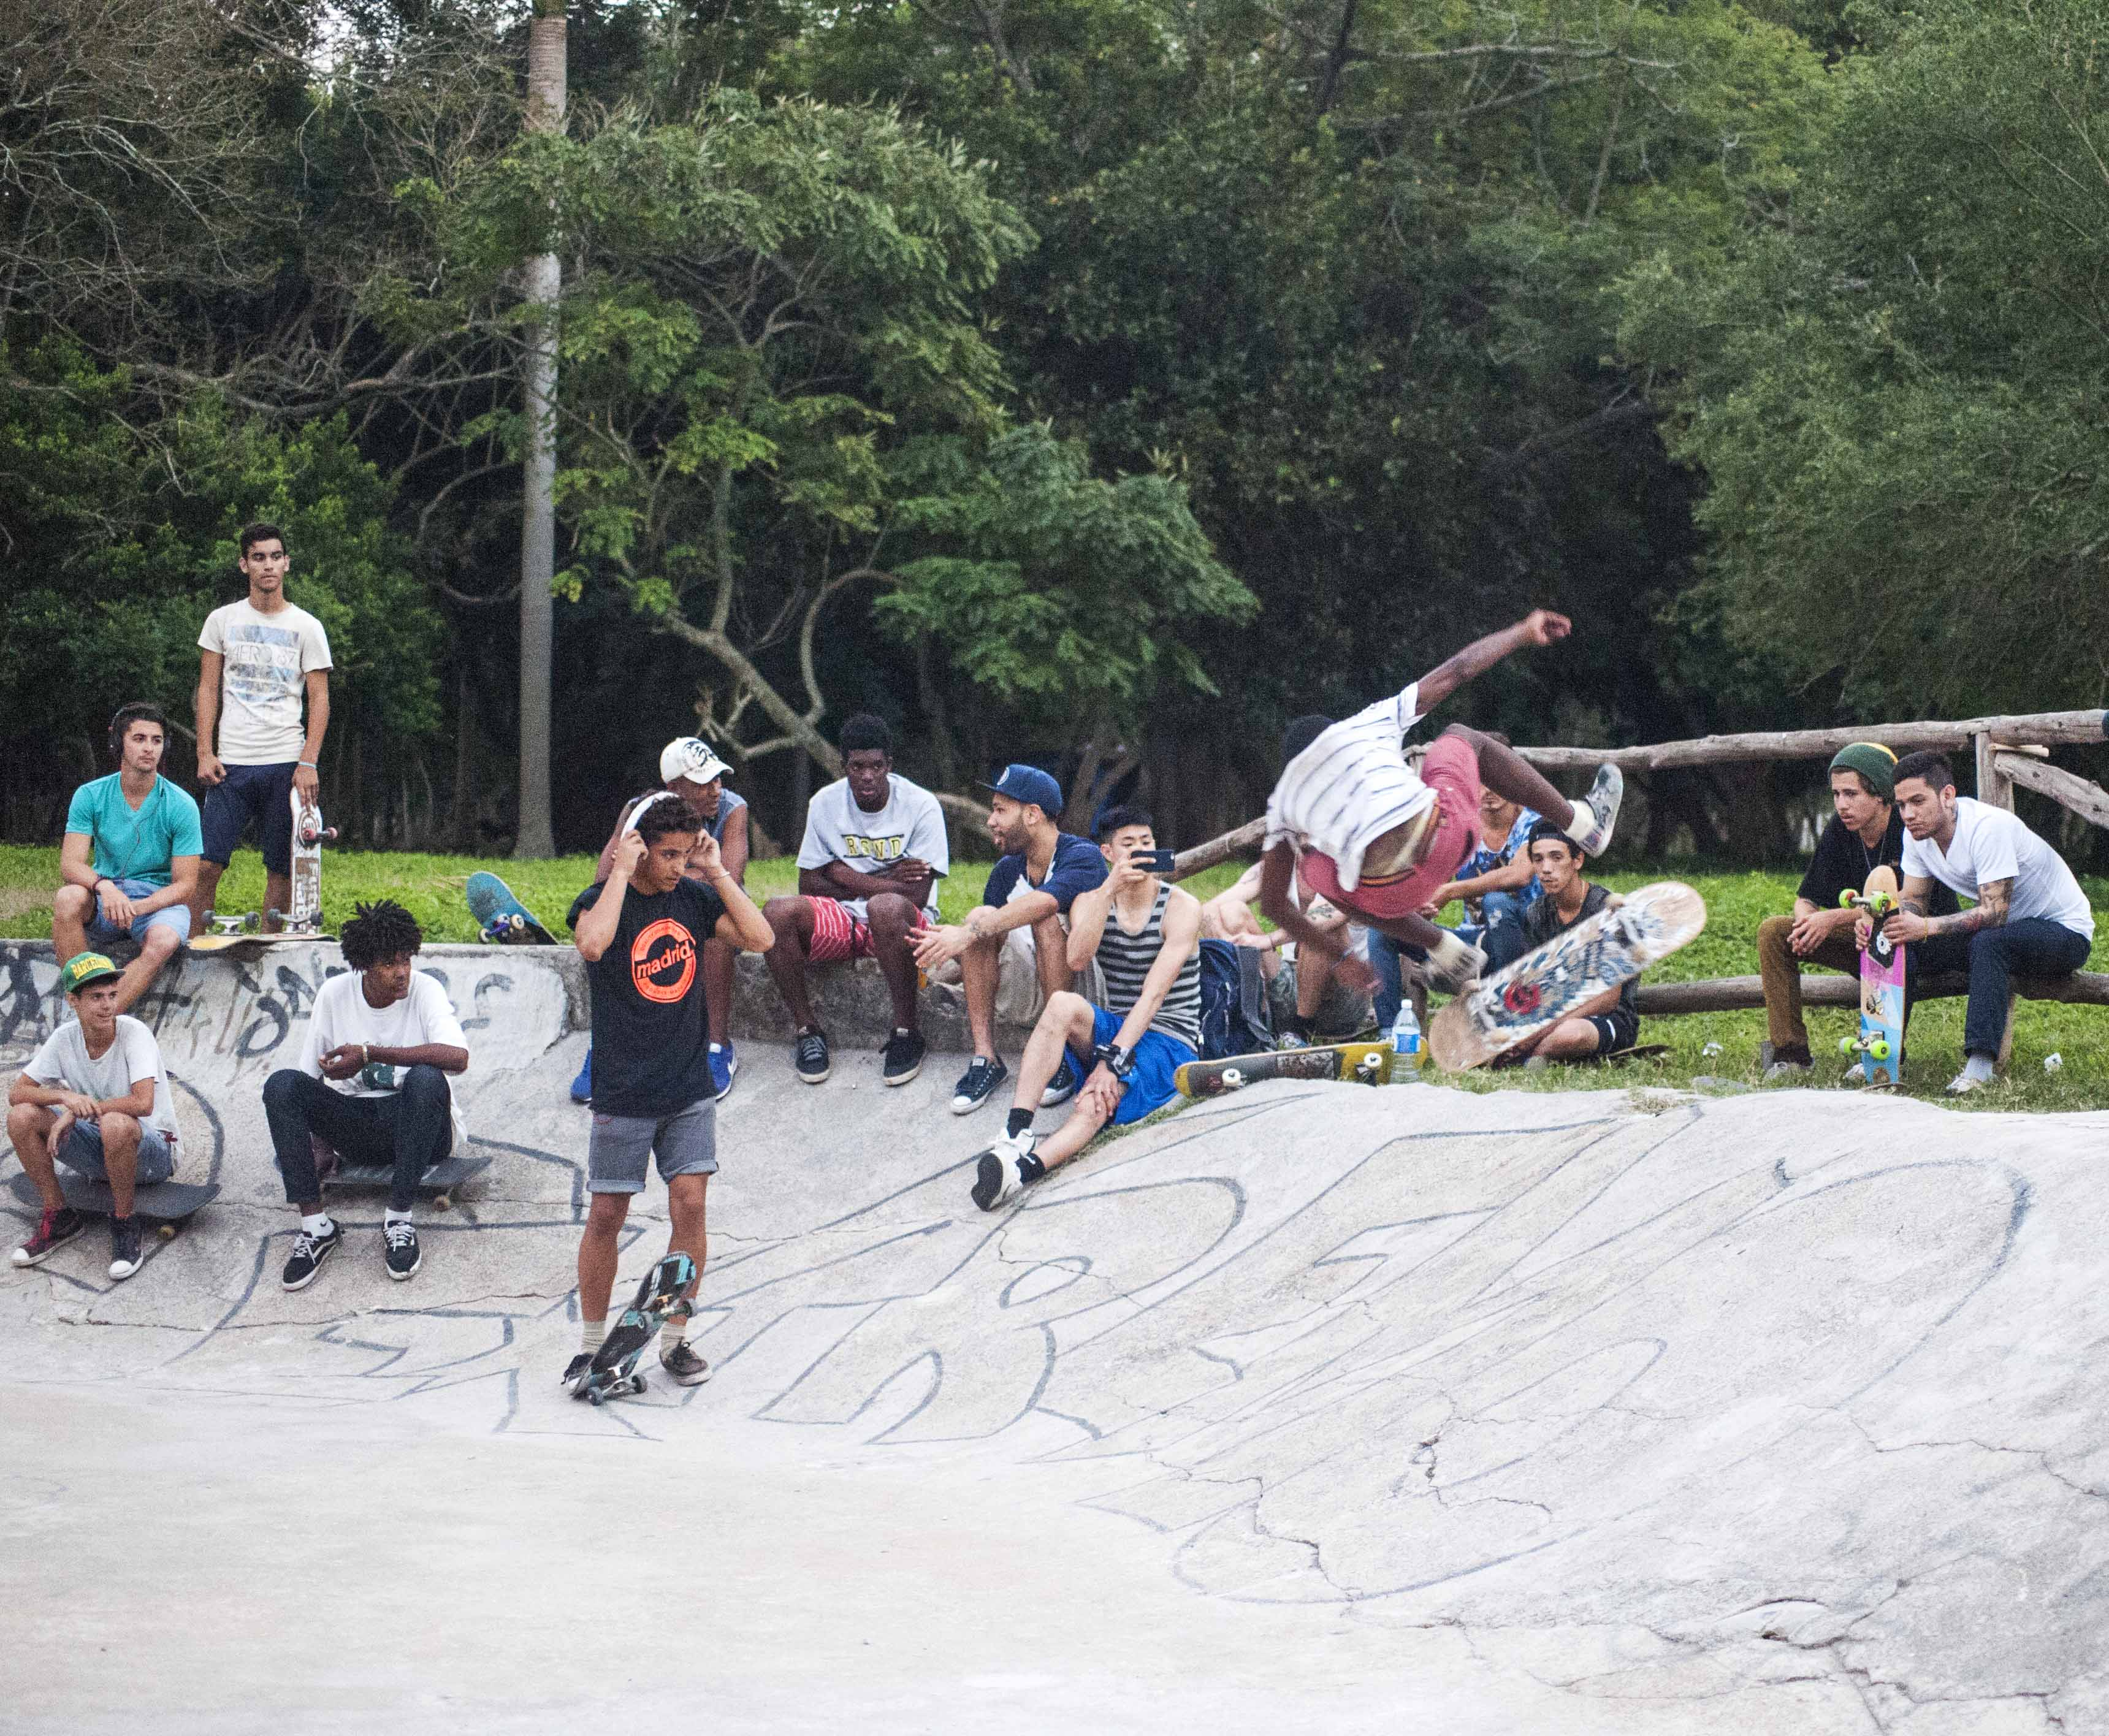 Skaters and friends look on as Camilo practices heel flips to fakie. Photo: Neftalie Williams